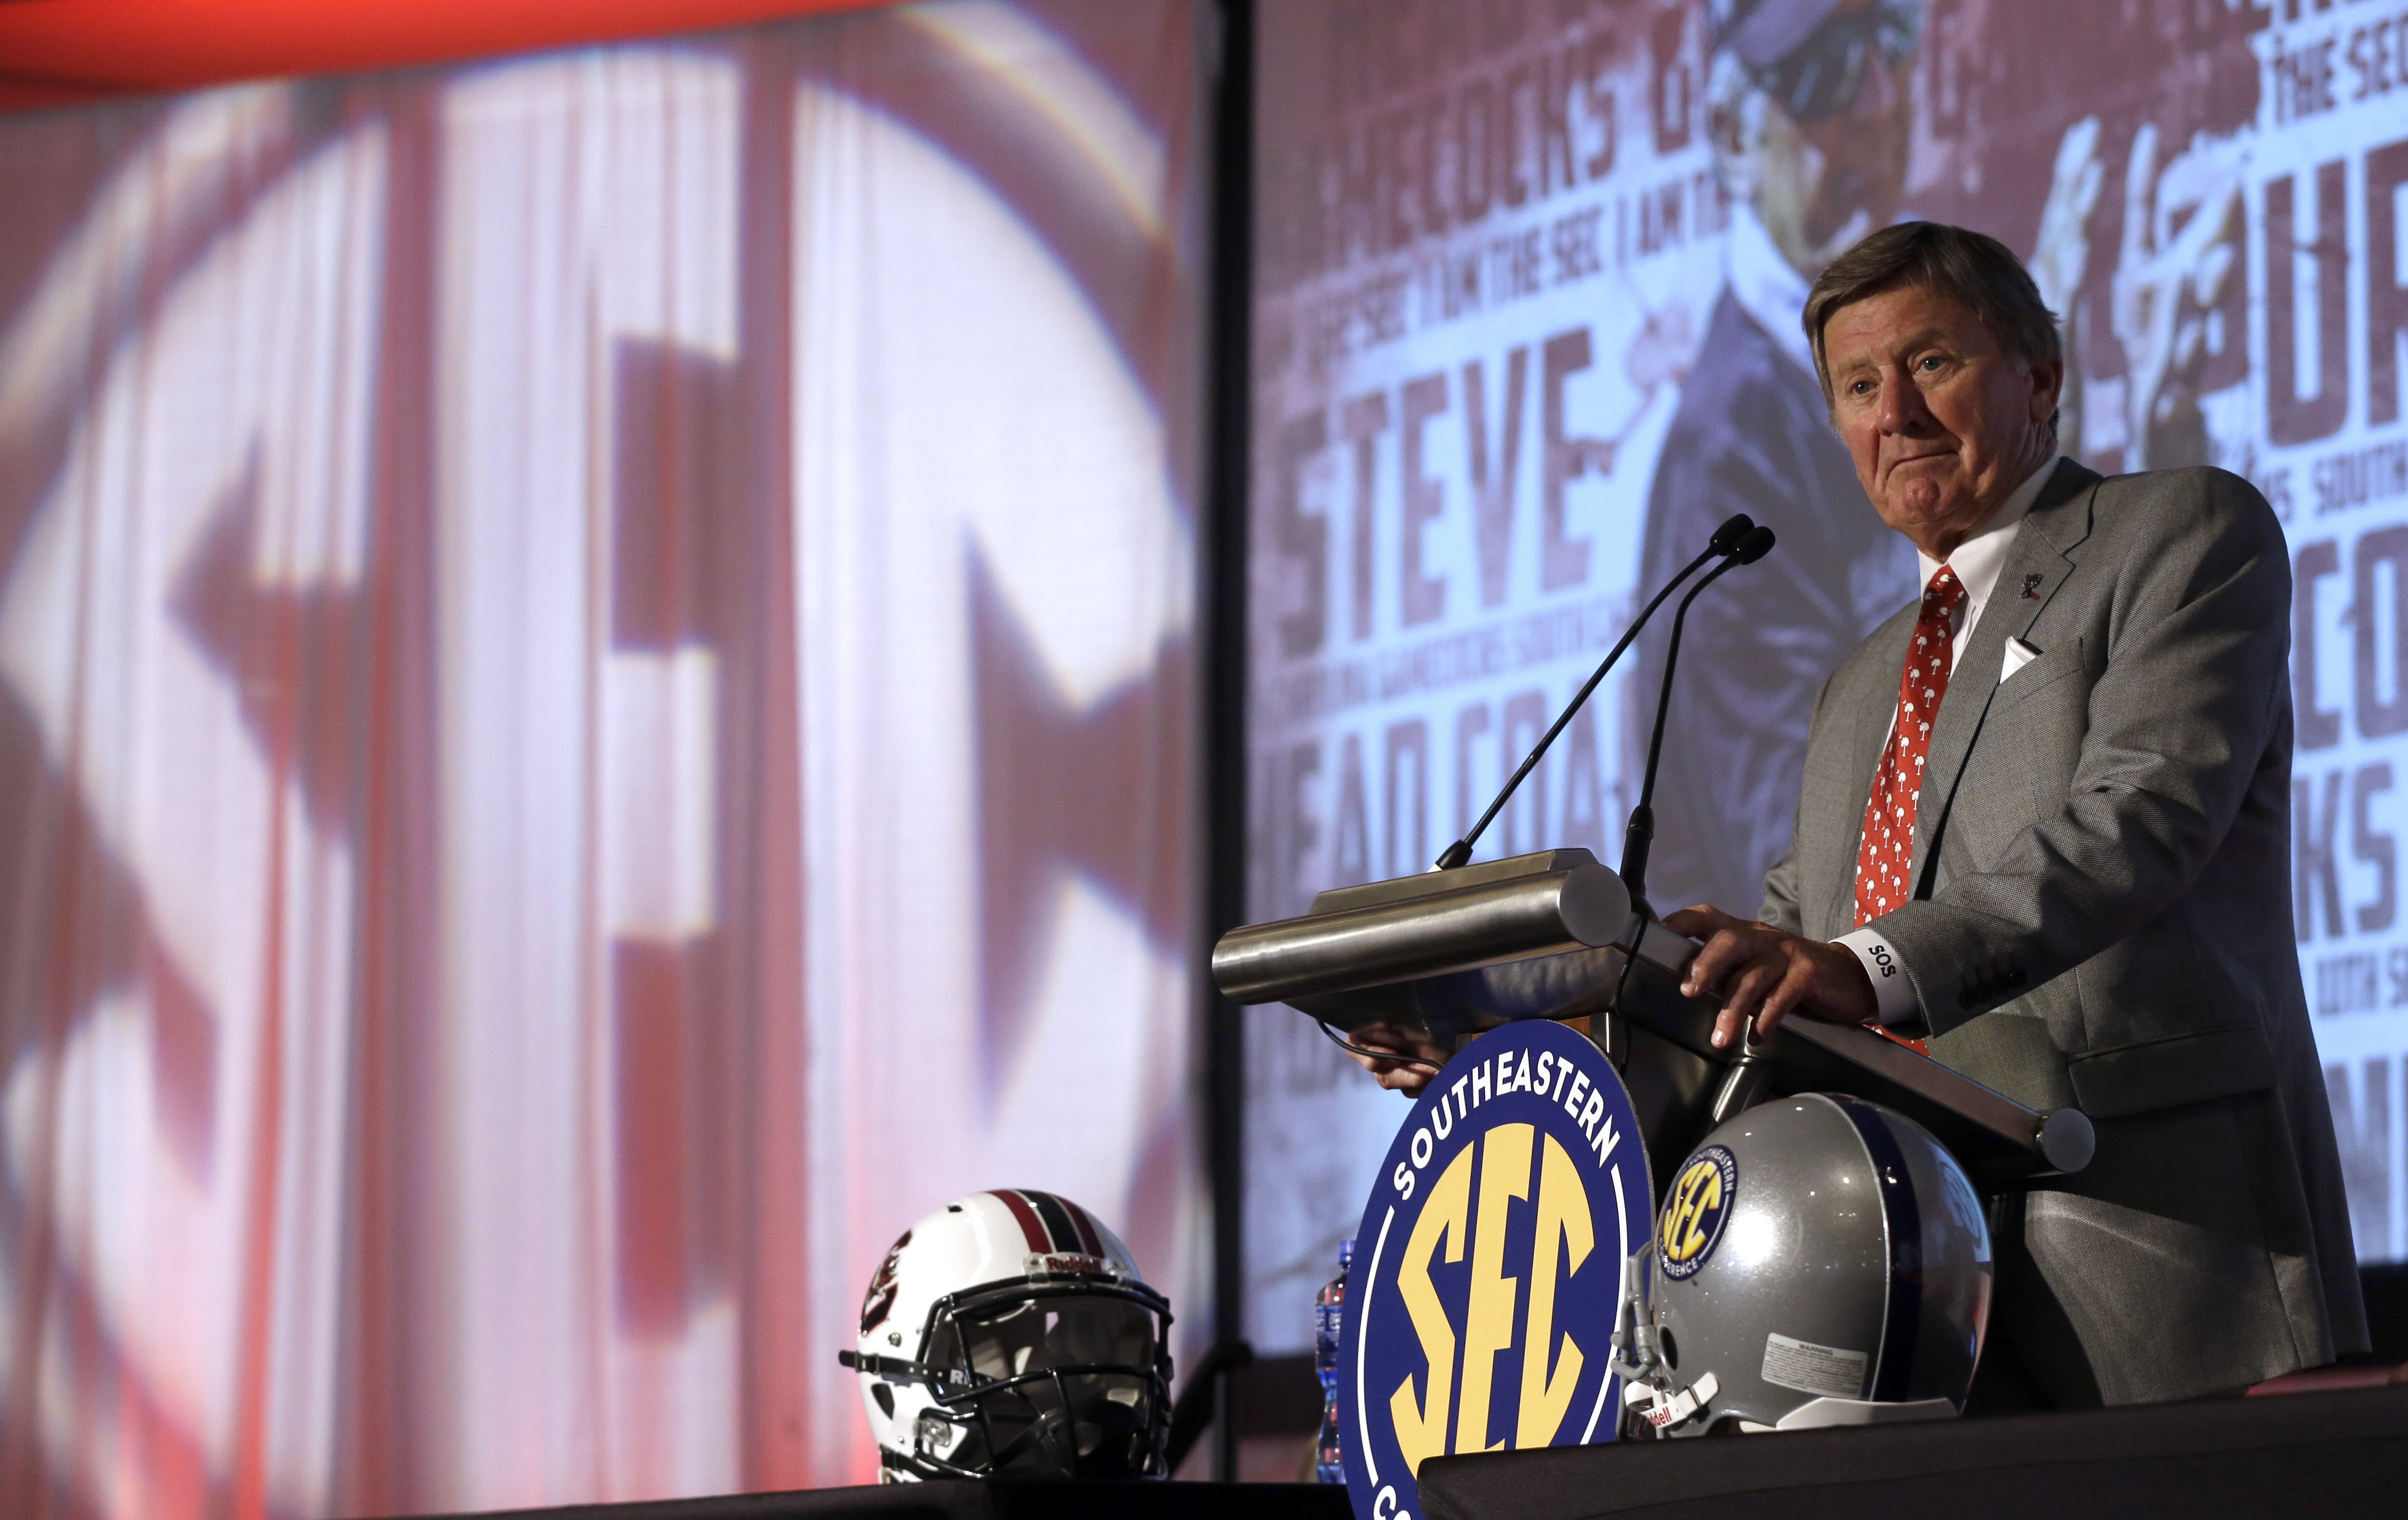 South Carolina coach Steve Spurrier speaks to the media at the Southeastern Conference NCAA college football media days, Tuesday, July 14, 2015, in Hoover, Ala. (AP Photo/Butch Dill)